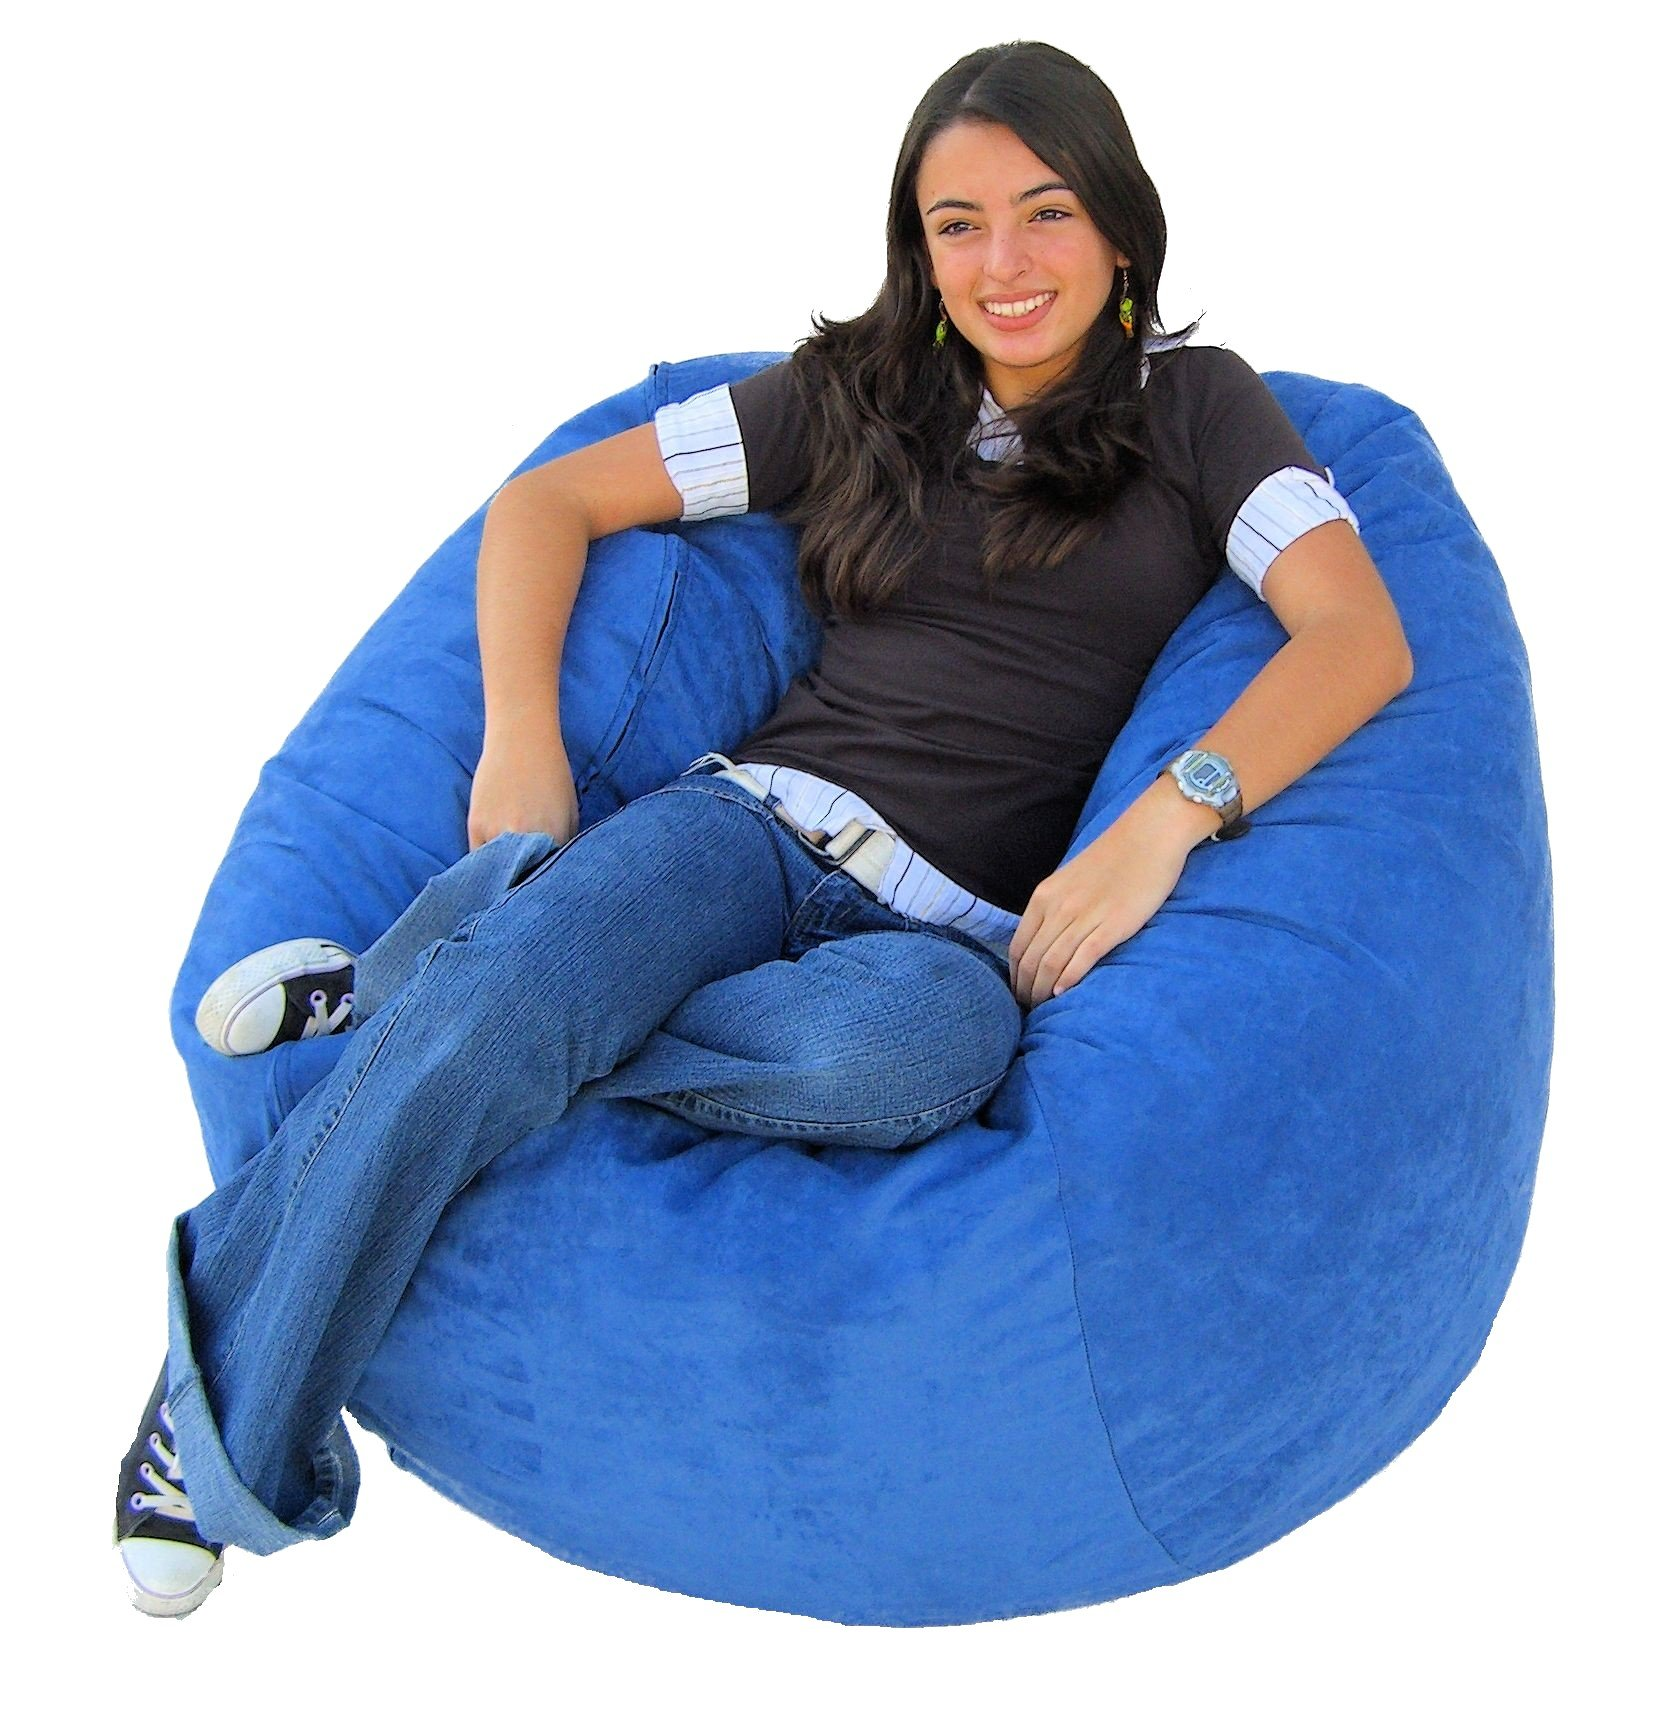 Cozy Sack 4-Feet Bean Bag Chair, Large, Sky Blue